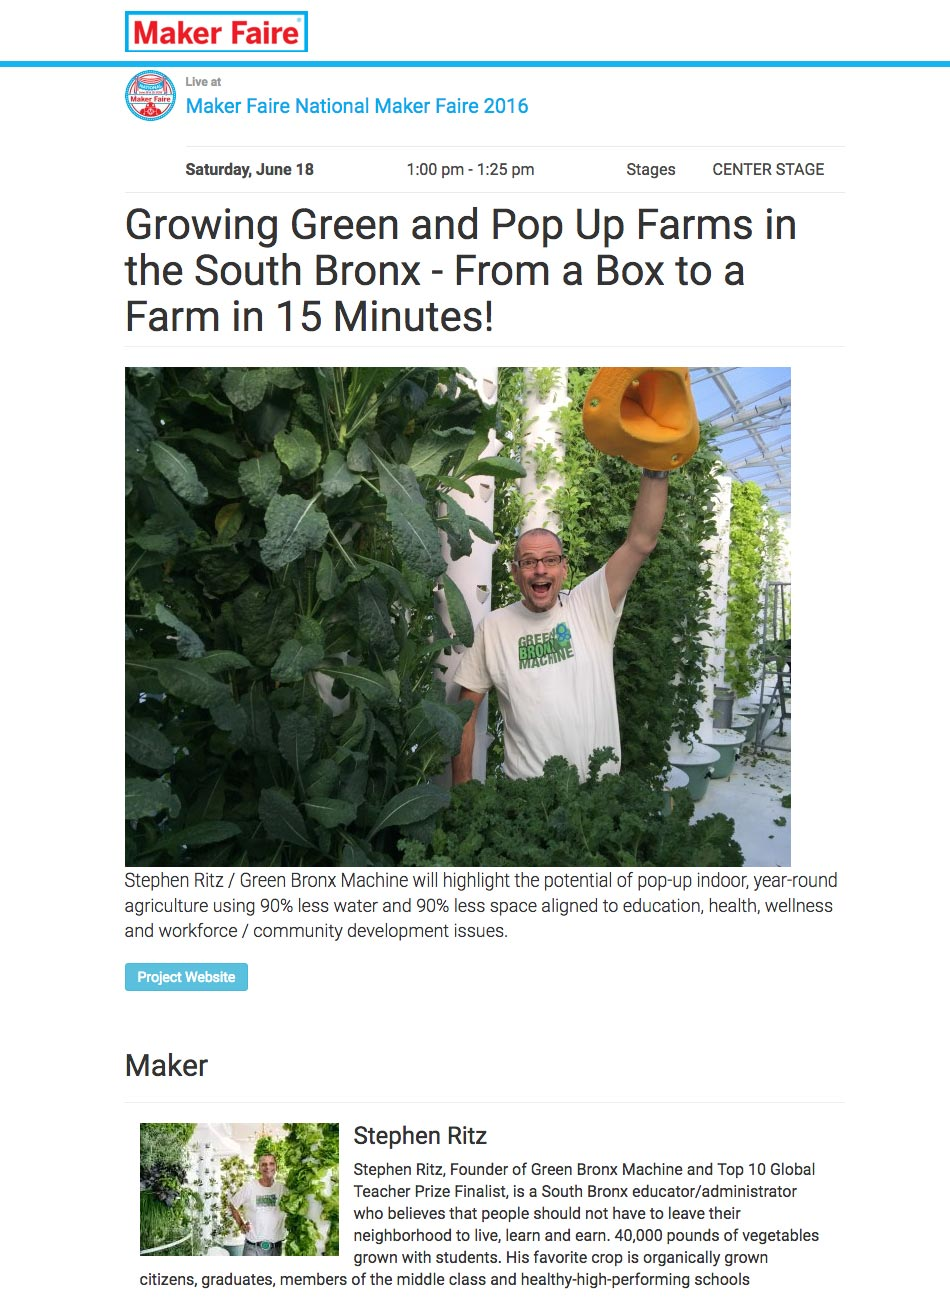 Maker Faire - Growing Green and Pop Up Farms in the South Bronx - From a Box to a Farm in 15 Minutes!